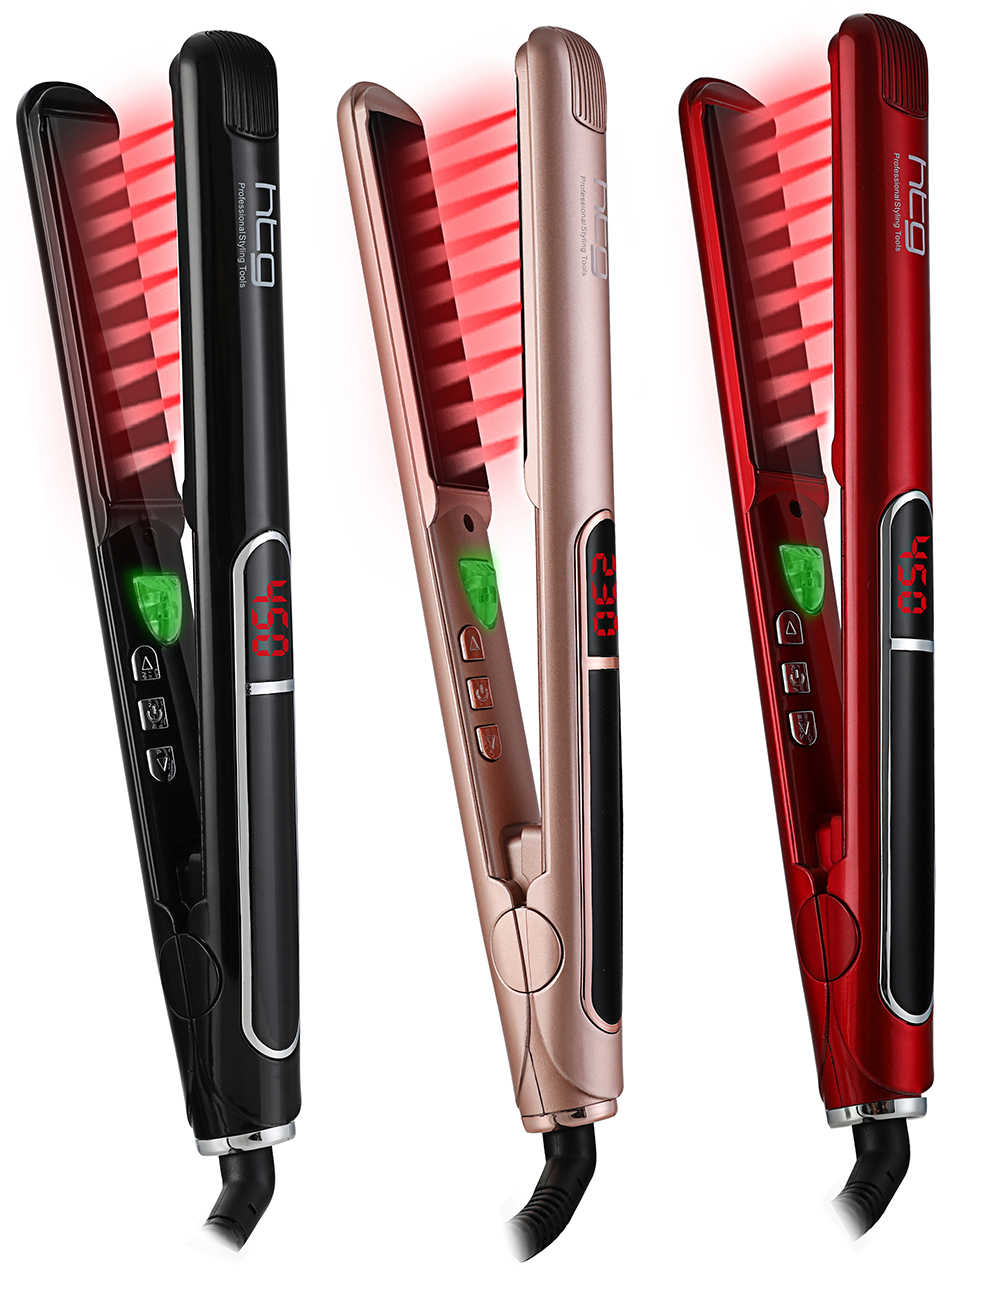 HTG Professional Hair Straightener with lONIC + Infrared Hair Straightener Straightening iron +LCD Display Hair Flat Iron HT087 titanium plates hair straightener lcd display straightening iron mch fast heating curling iron flat iron salon styling tools